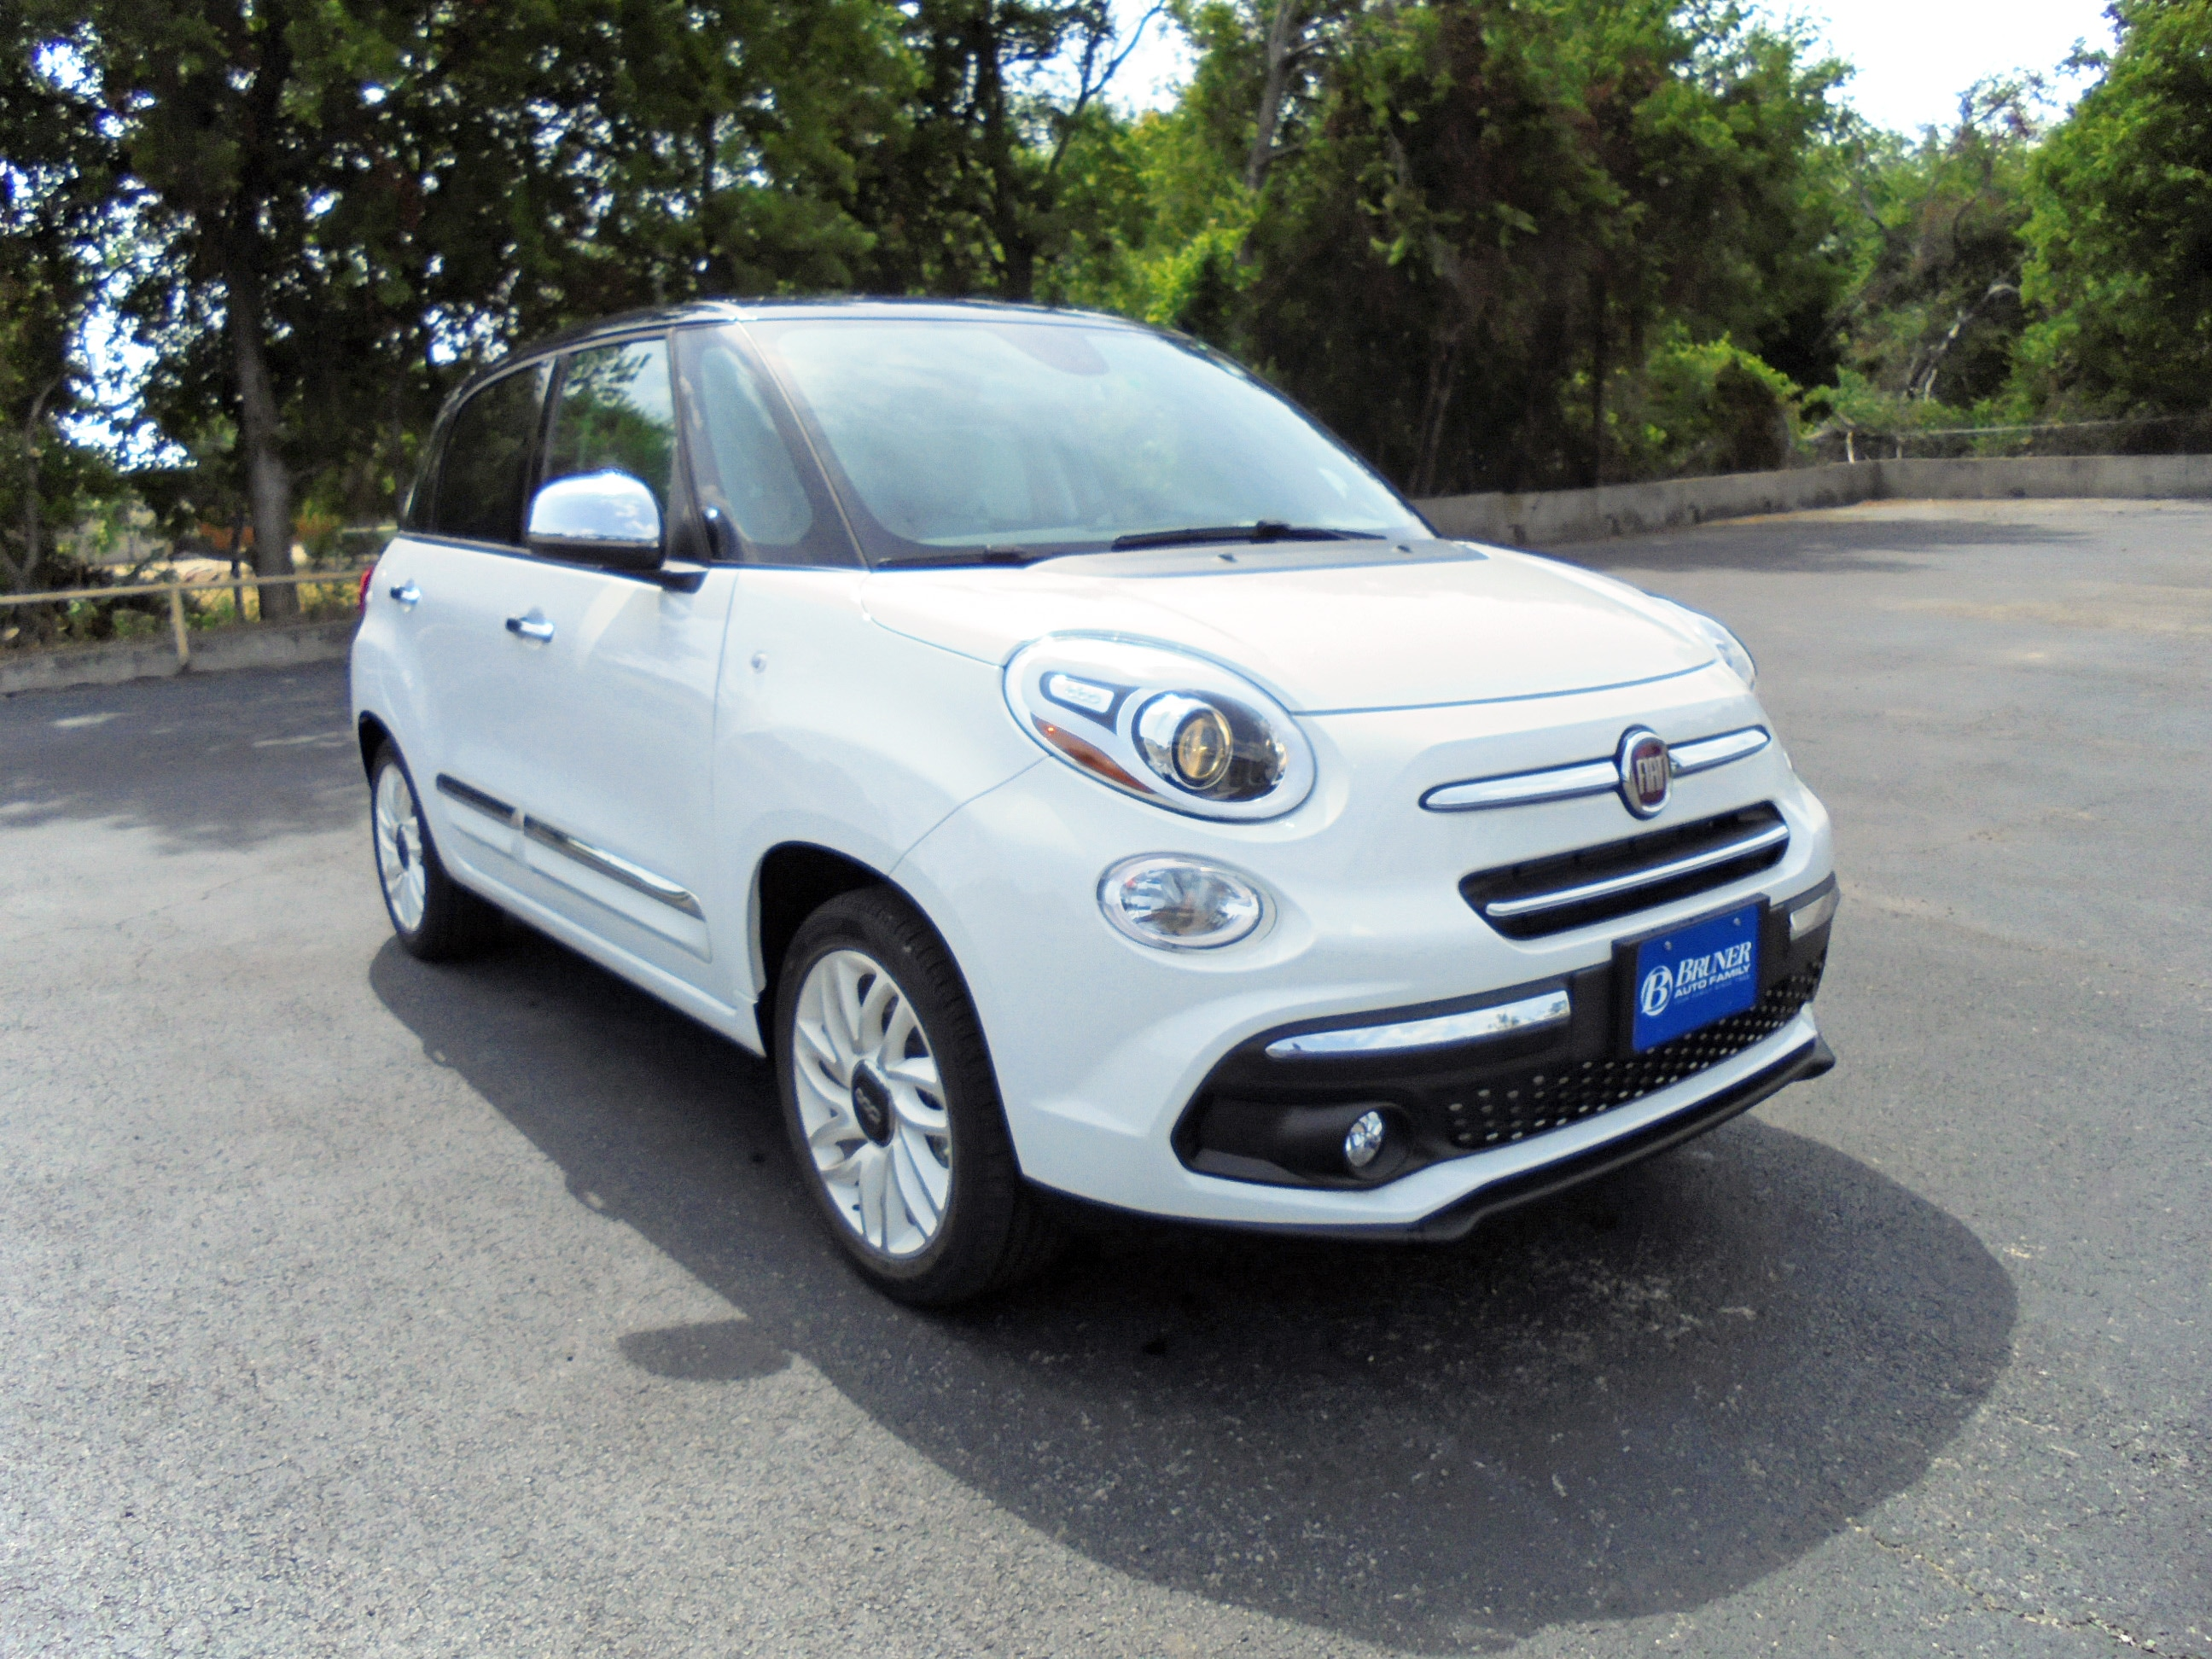 2018 Fiat 500l Lounge For Sale In Stephenville Tx